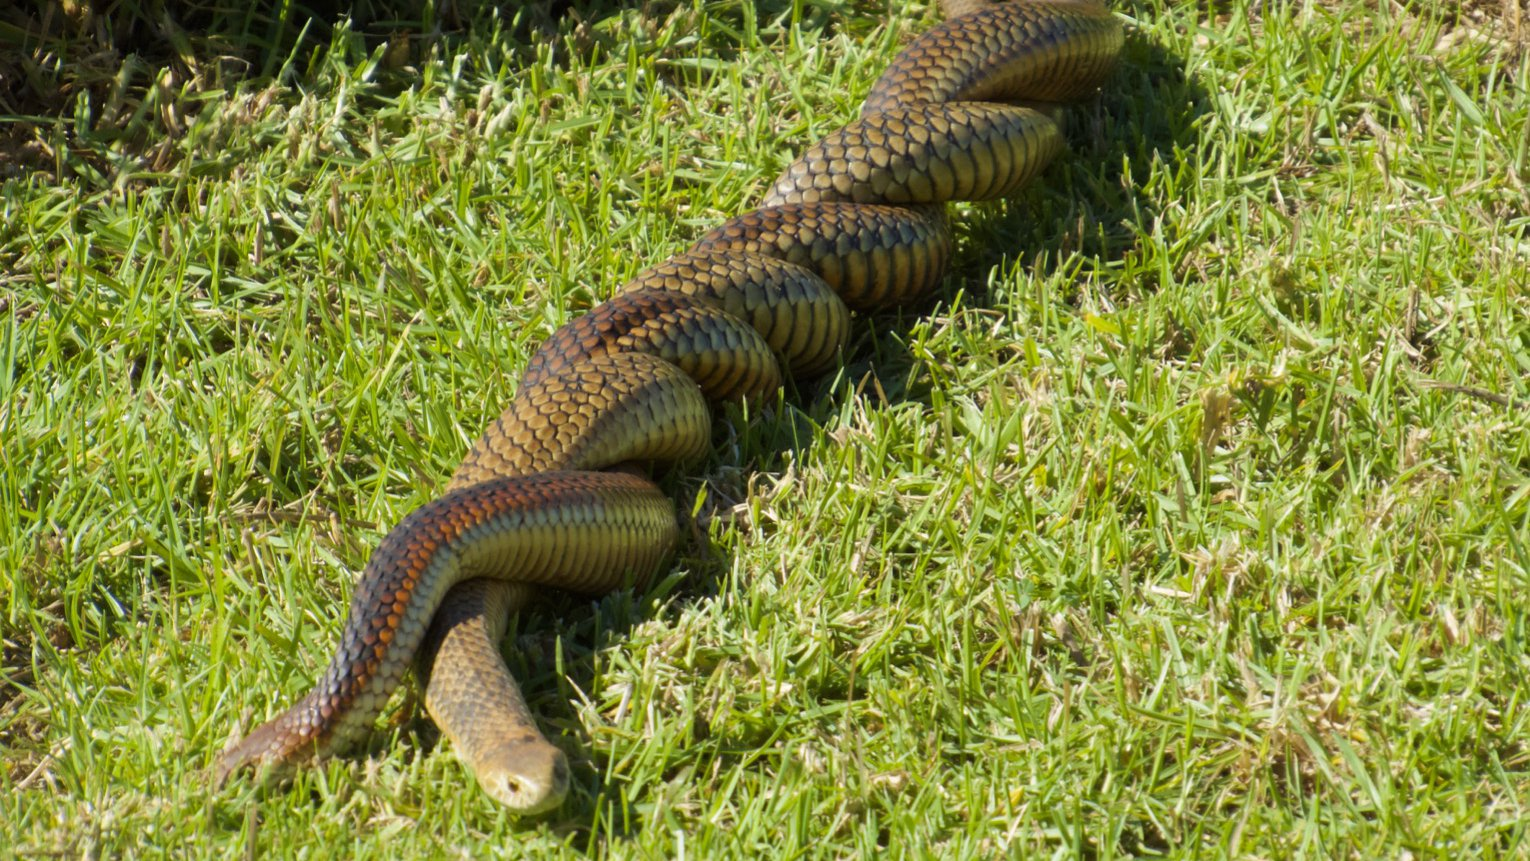 Copperhead snakes mating